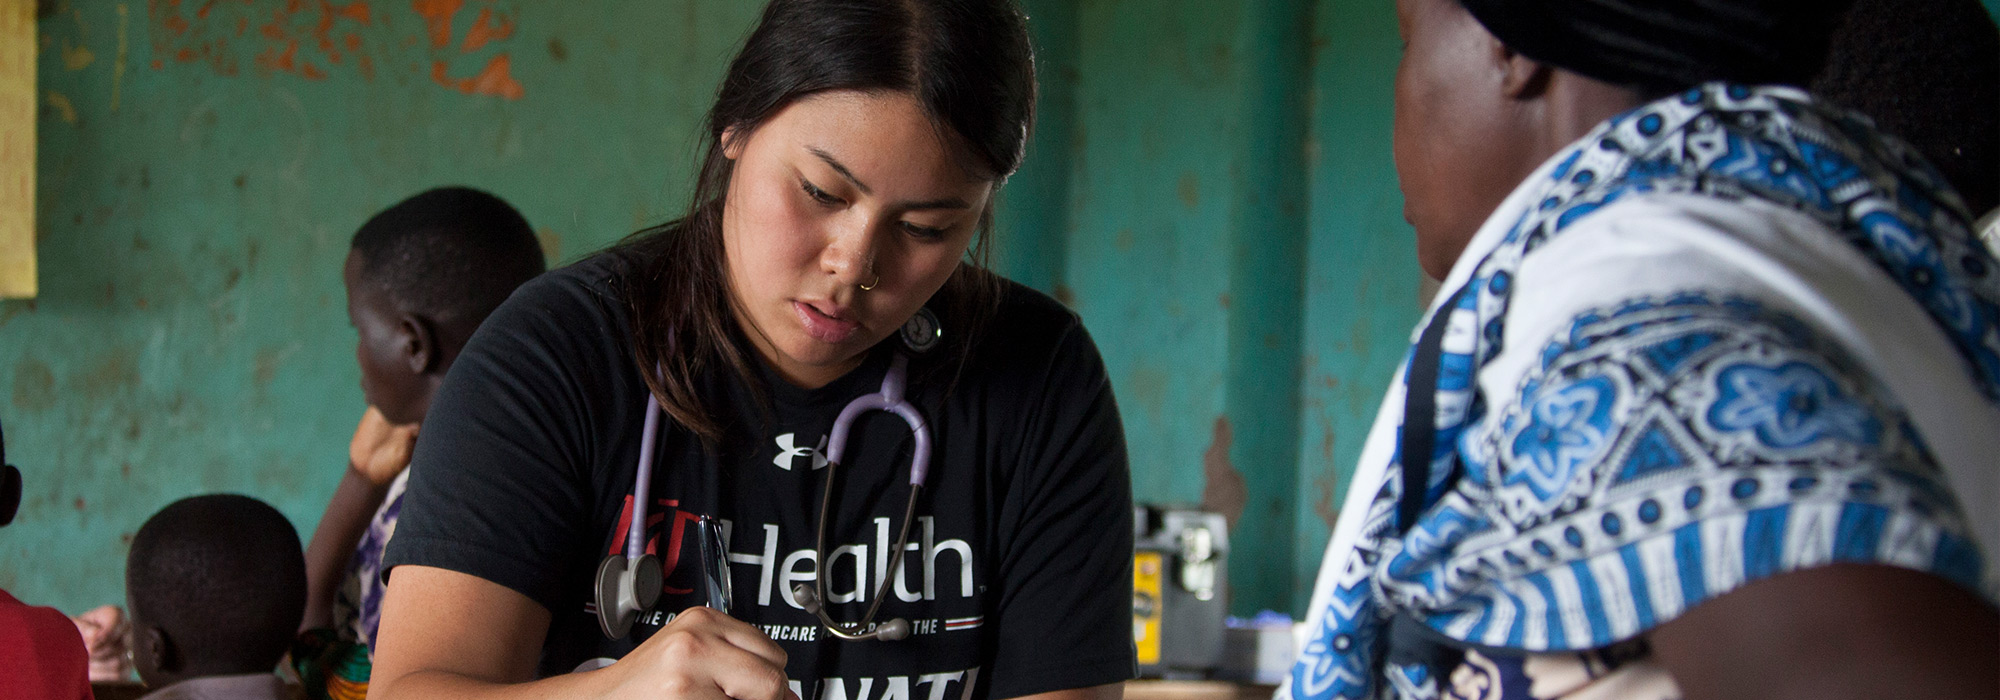 Nursing student Sabrina Bernardo helps a patient in a free clinic in Tanzania